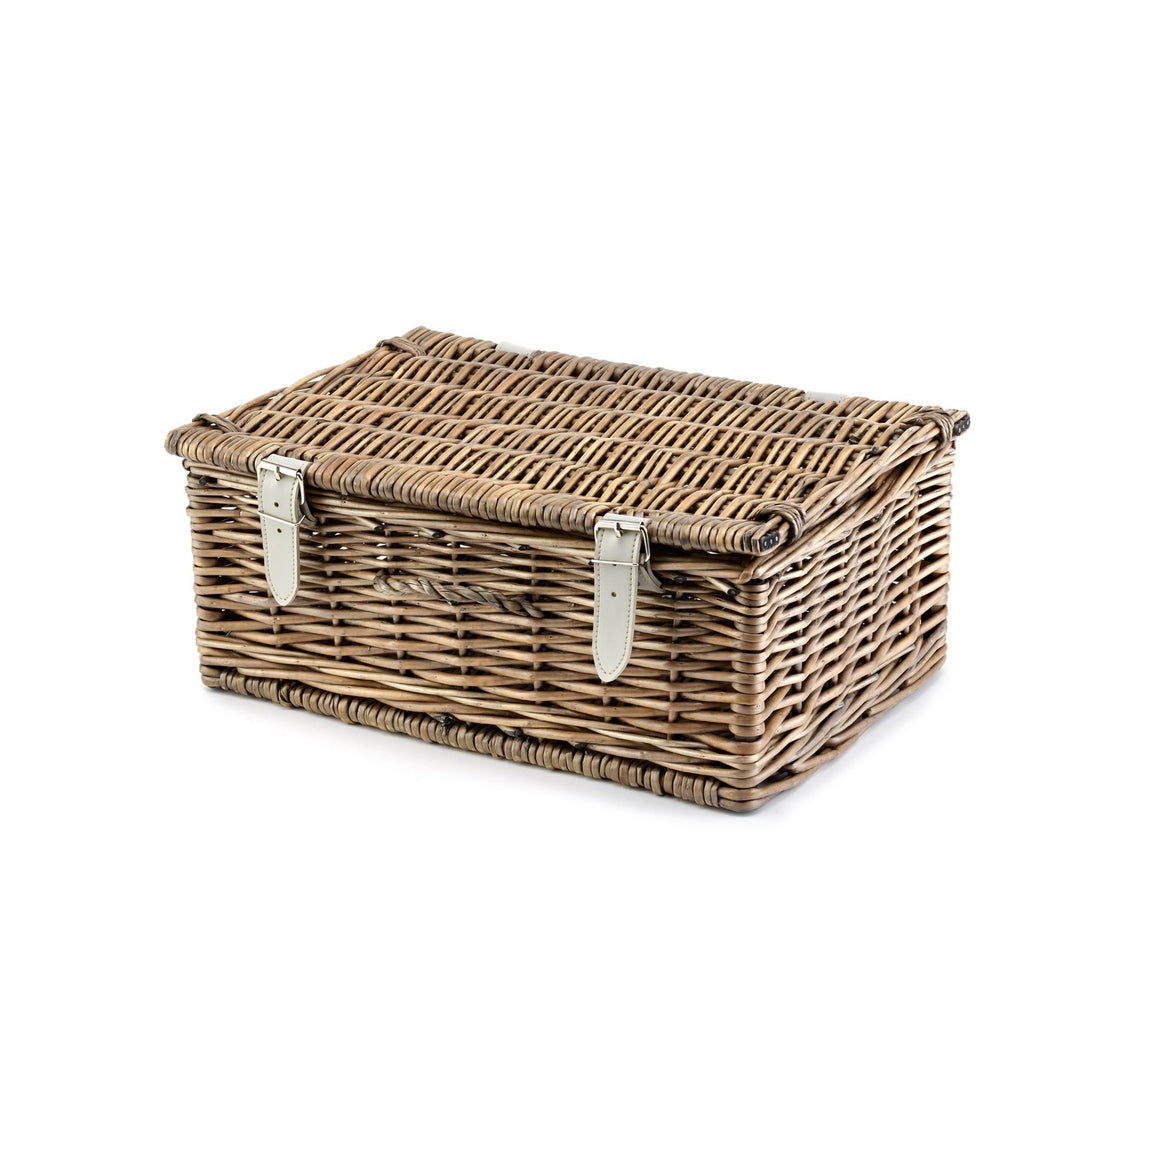 14 Inch Antique Finish Wicker Hamper - Empty - 36*25*15